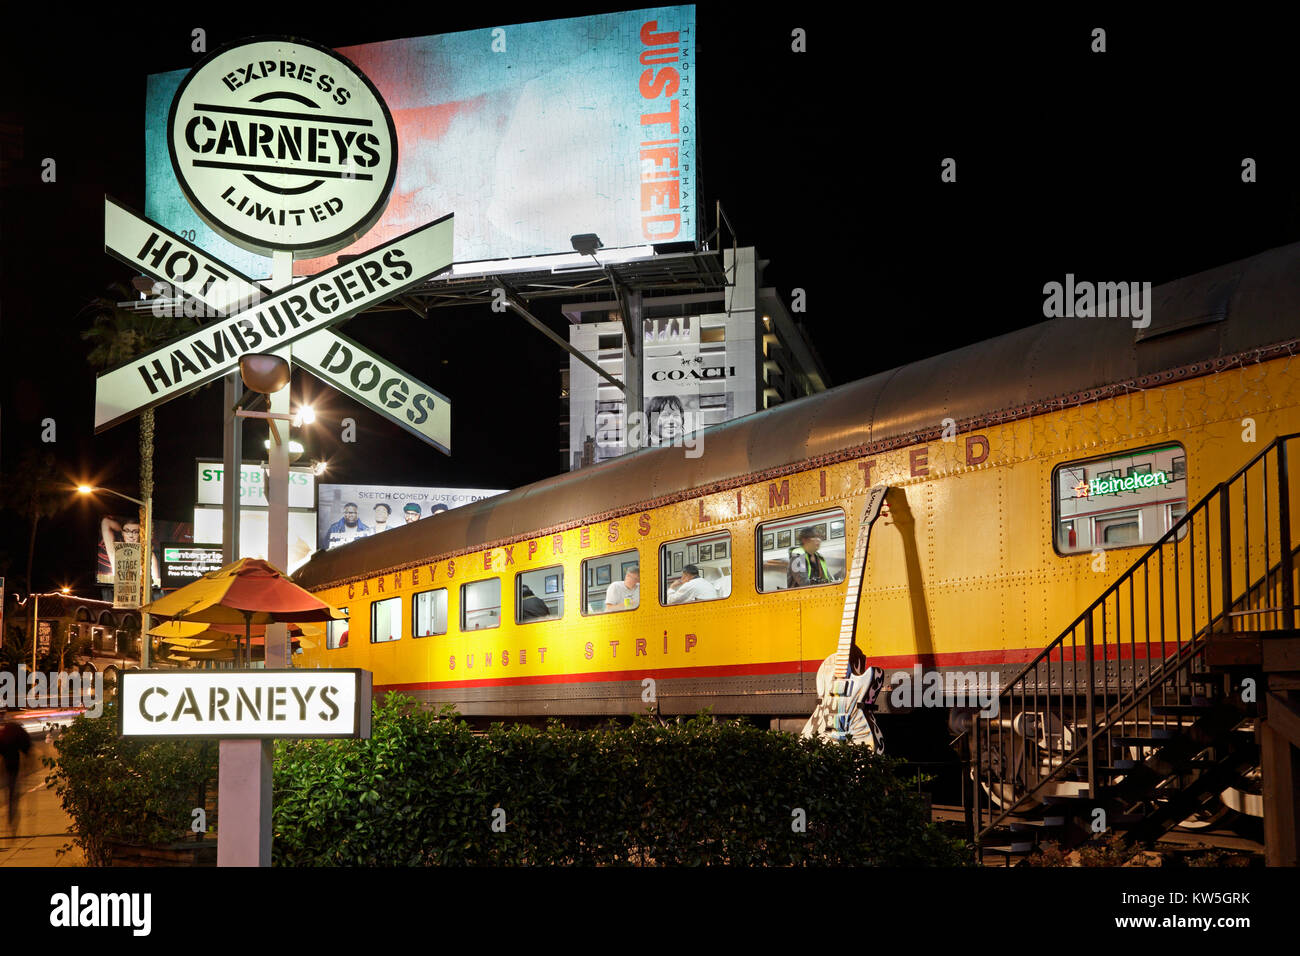 Carneys Express Limited Hot Dogs and Hamburger diner on the Sunset Strip, Los Angeles, California - Stock Image